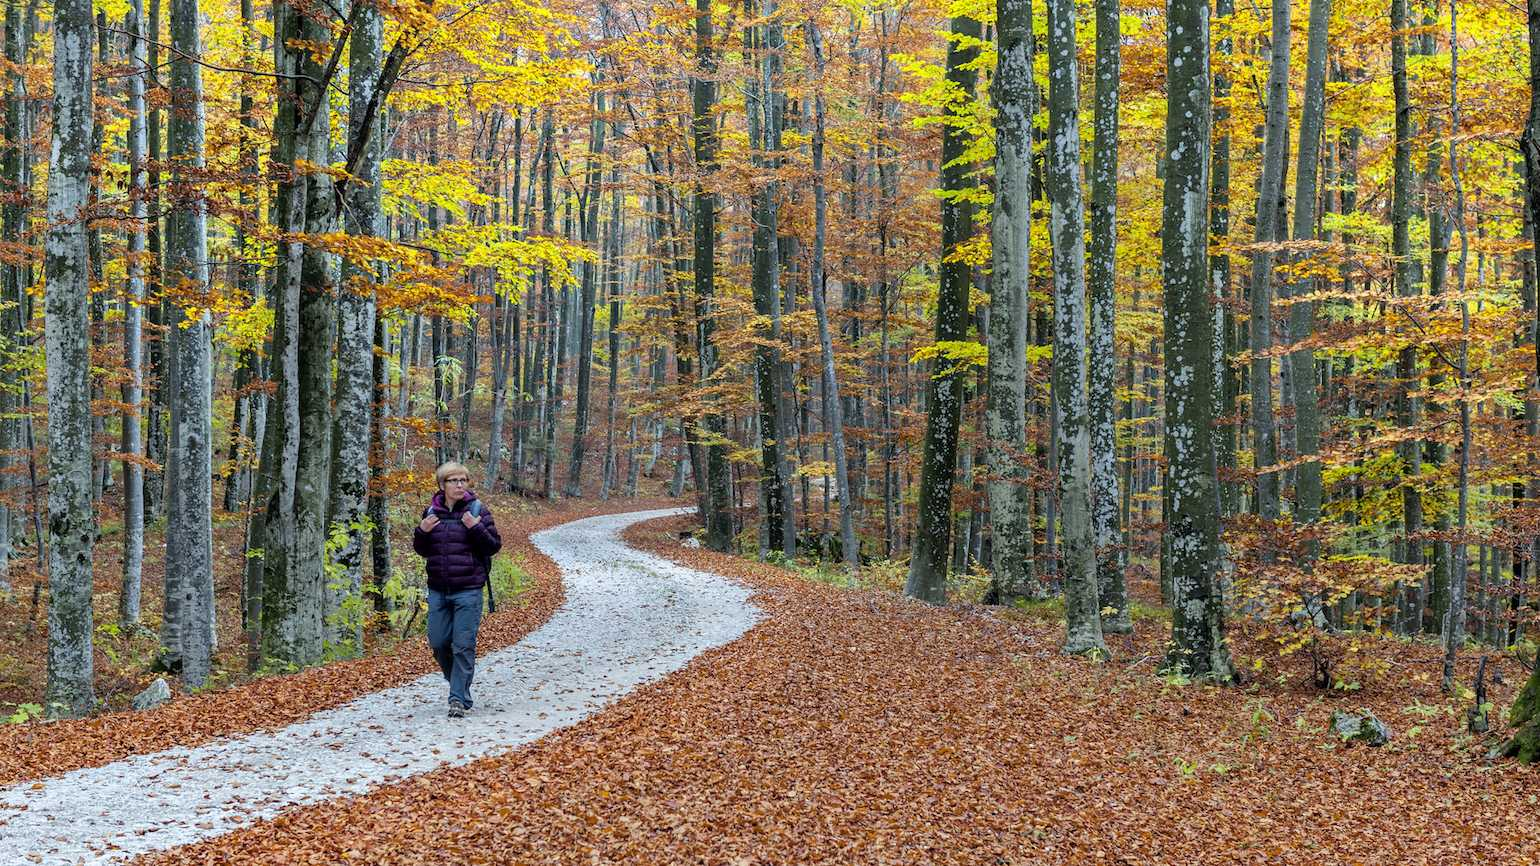 Walking in the fall leaves